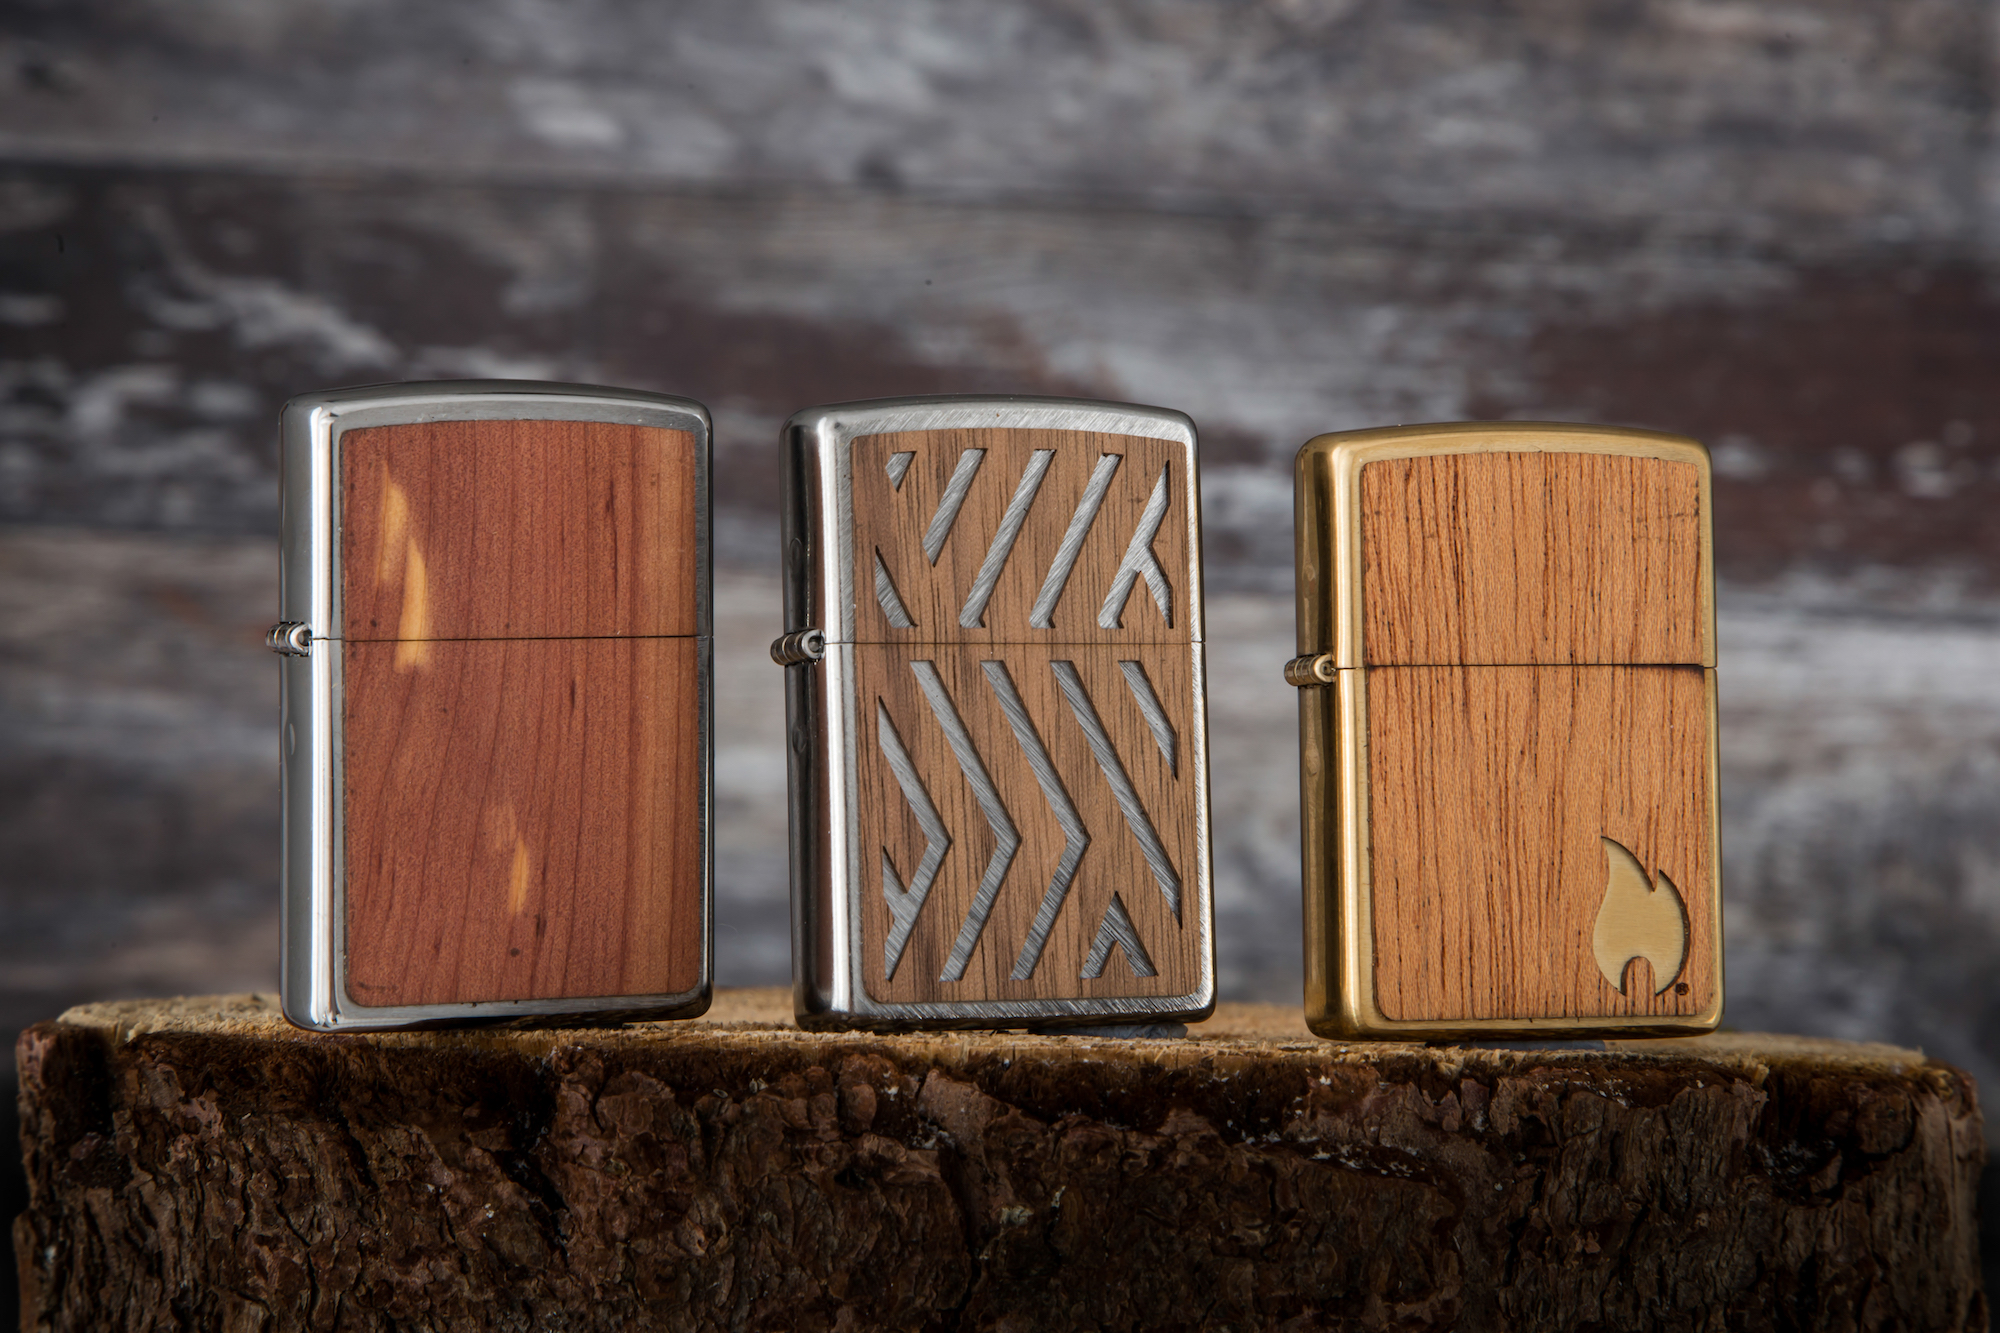 Zippo x WOODCHUCK USA close-up of row of lighters